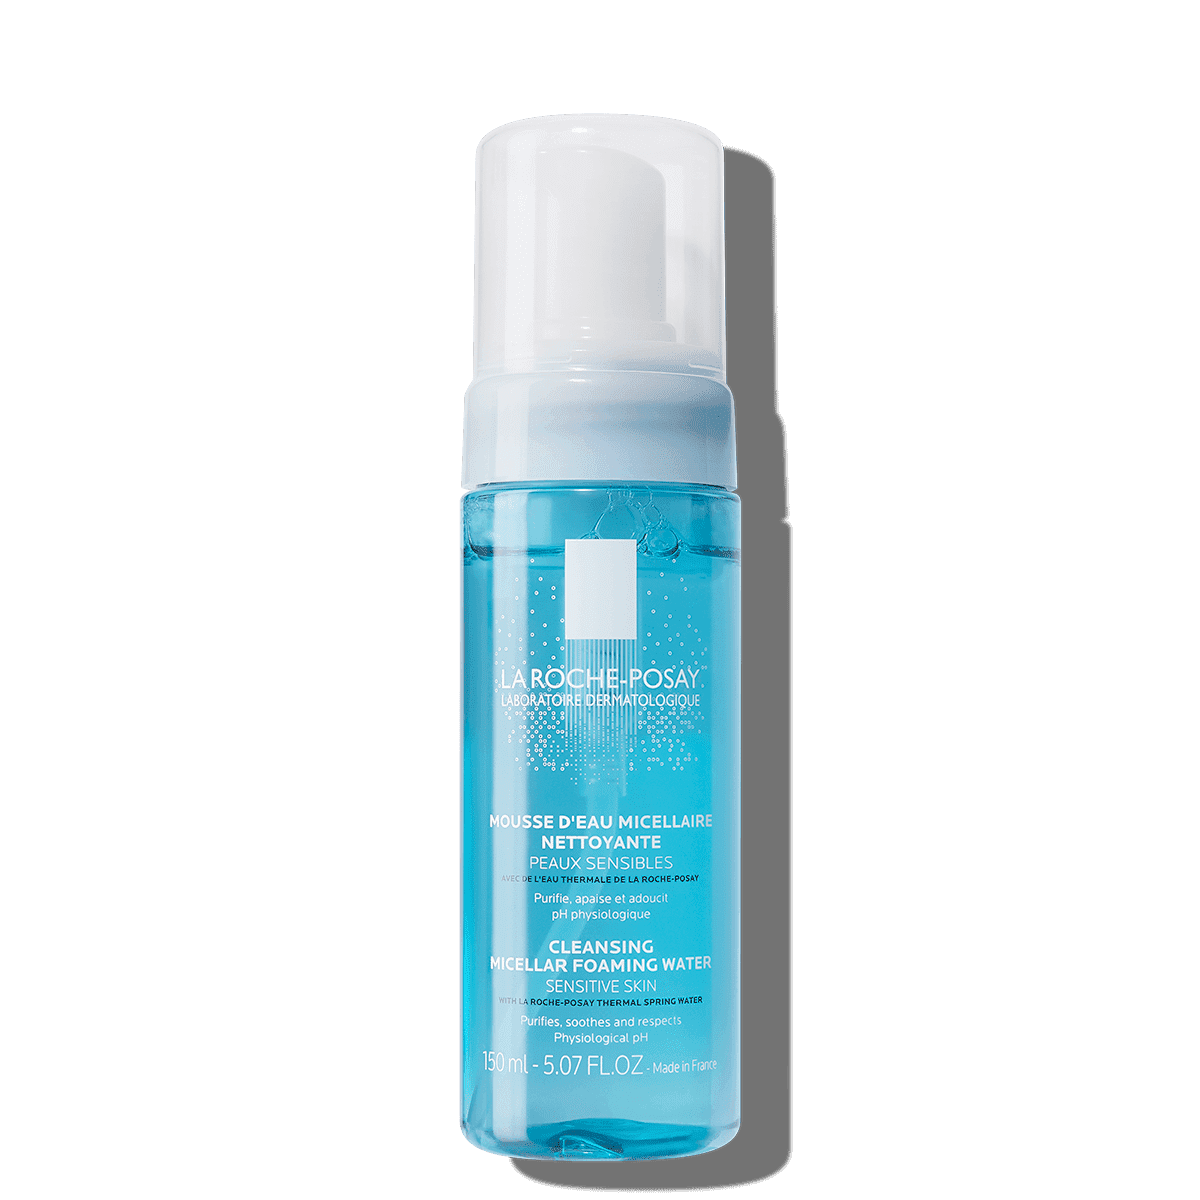 Cleanser Physiological Cleansing Micellar Foaming Water 150 ml Przód 2 | La Roche Posay